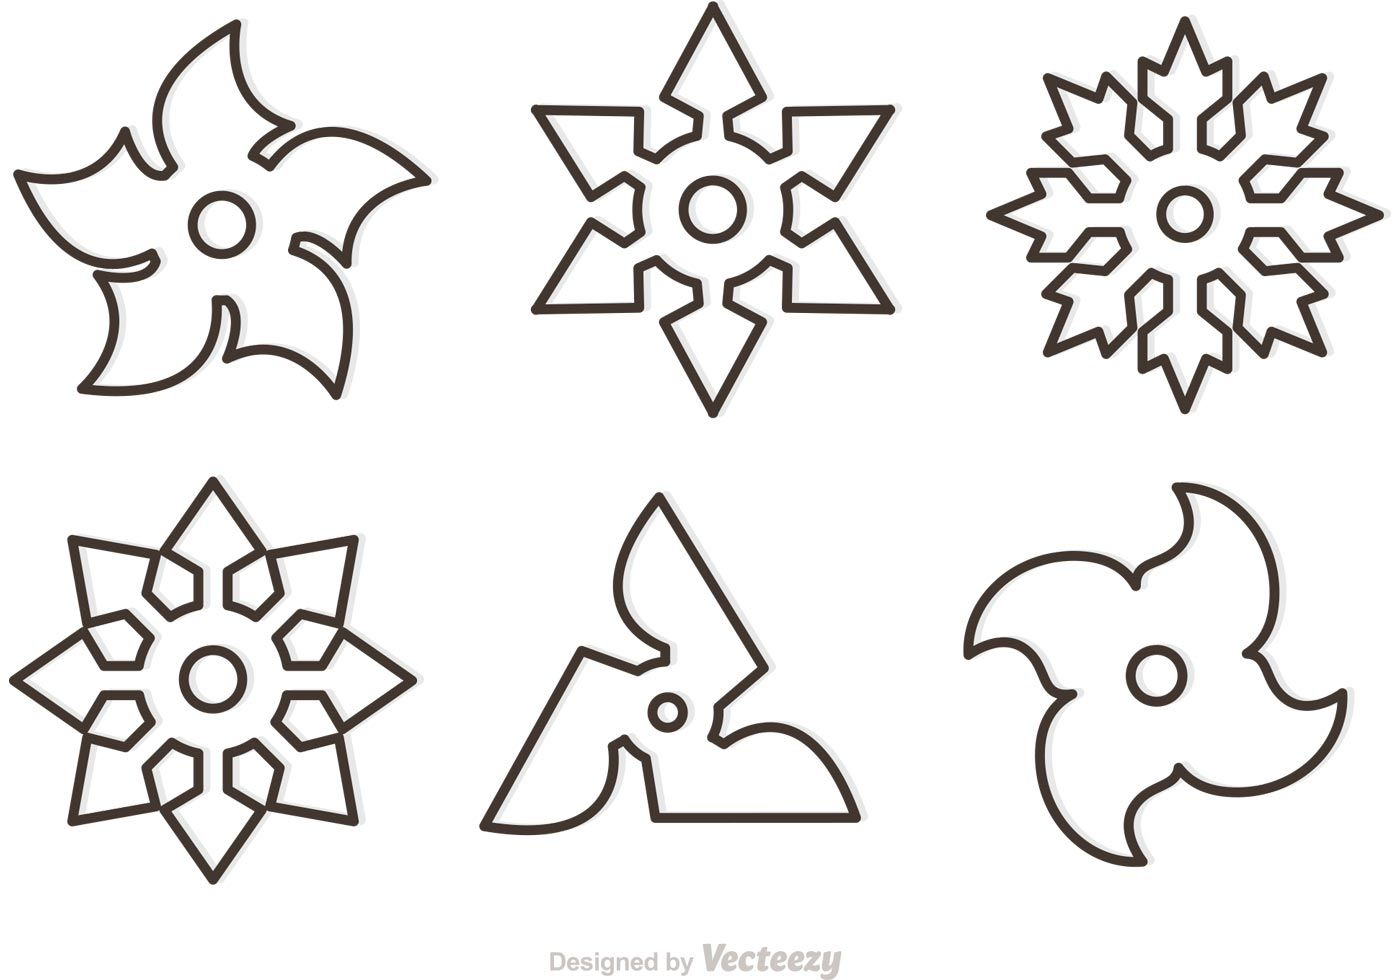 Outline Ninja Star Vectors Choose From Thousands Of Free Vectors Clip Art Designs Icons Ninjago Birthday Party Lego Ninjago Birthday Ninja Birthday Parties